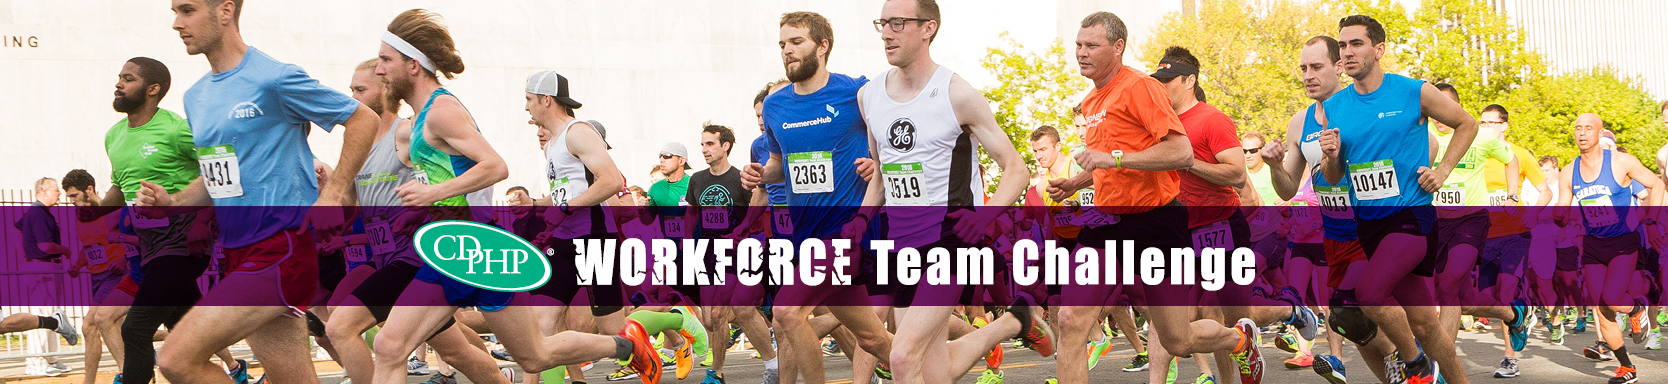 workforce team challenge